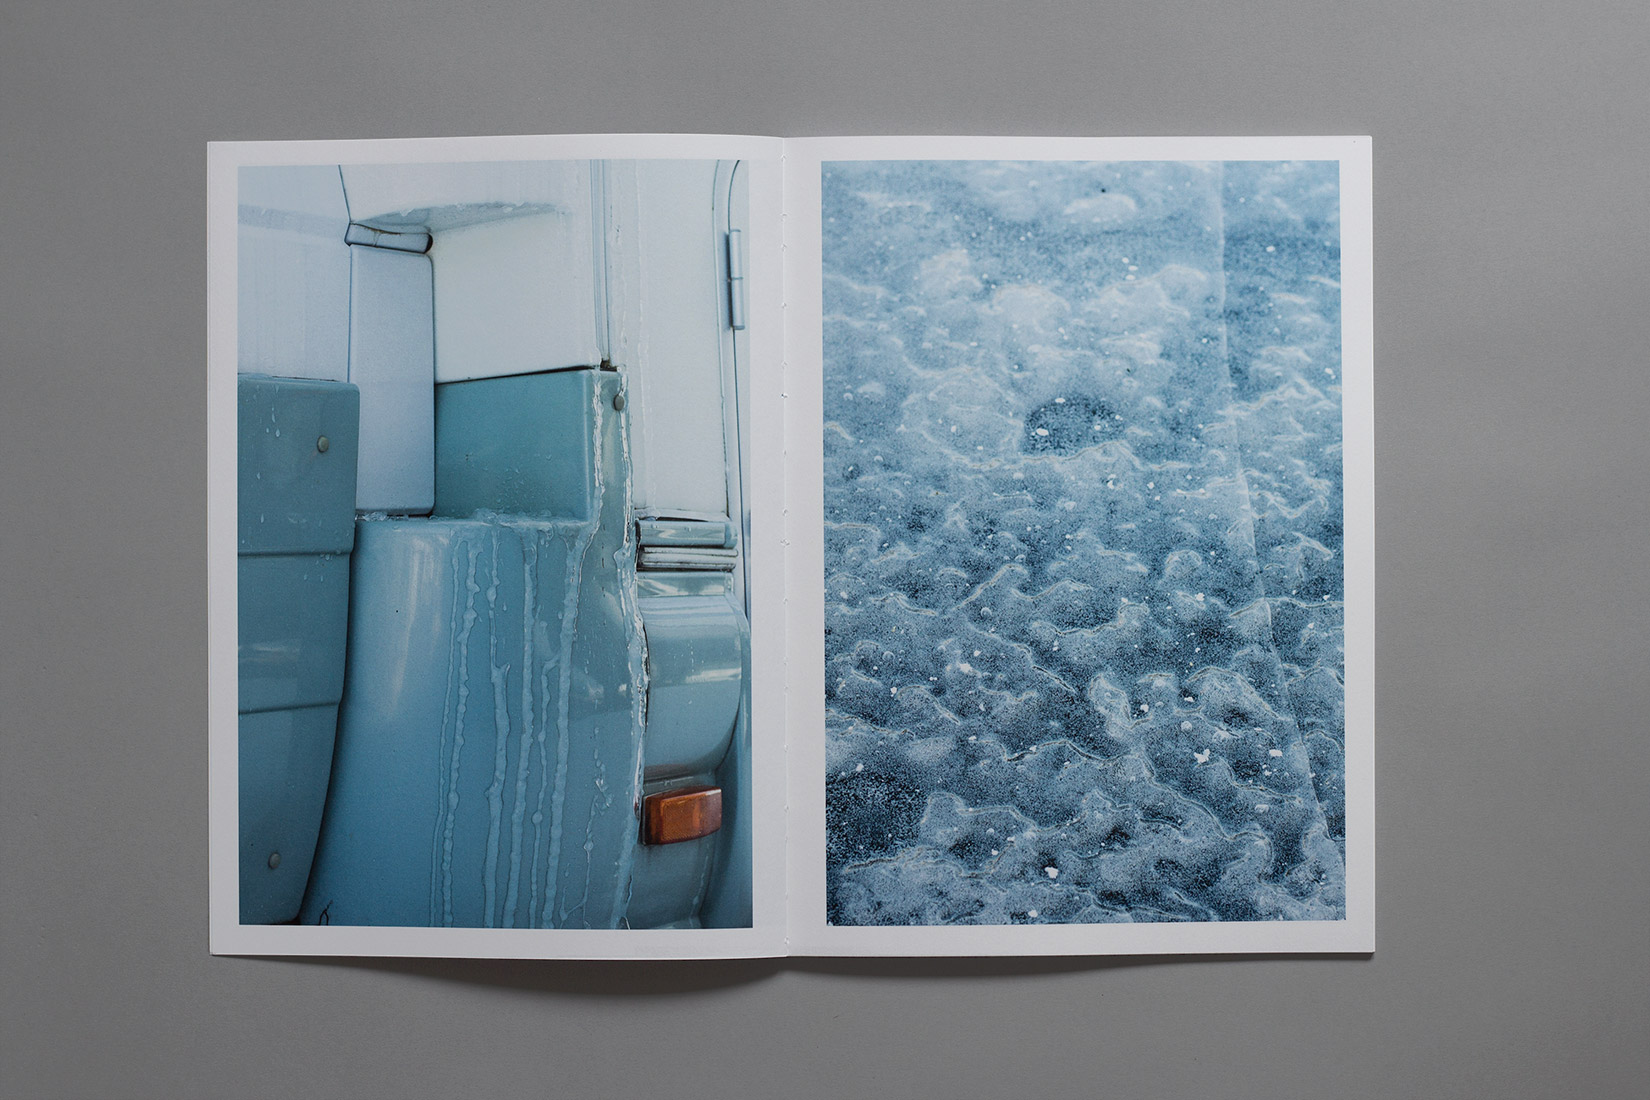 Les Brenets - Camping-car, ice, frozen lake, winter, book, photography